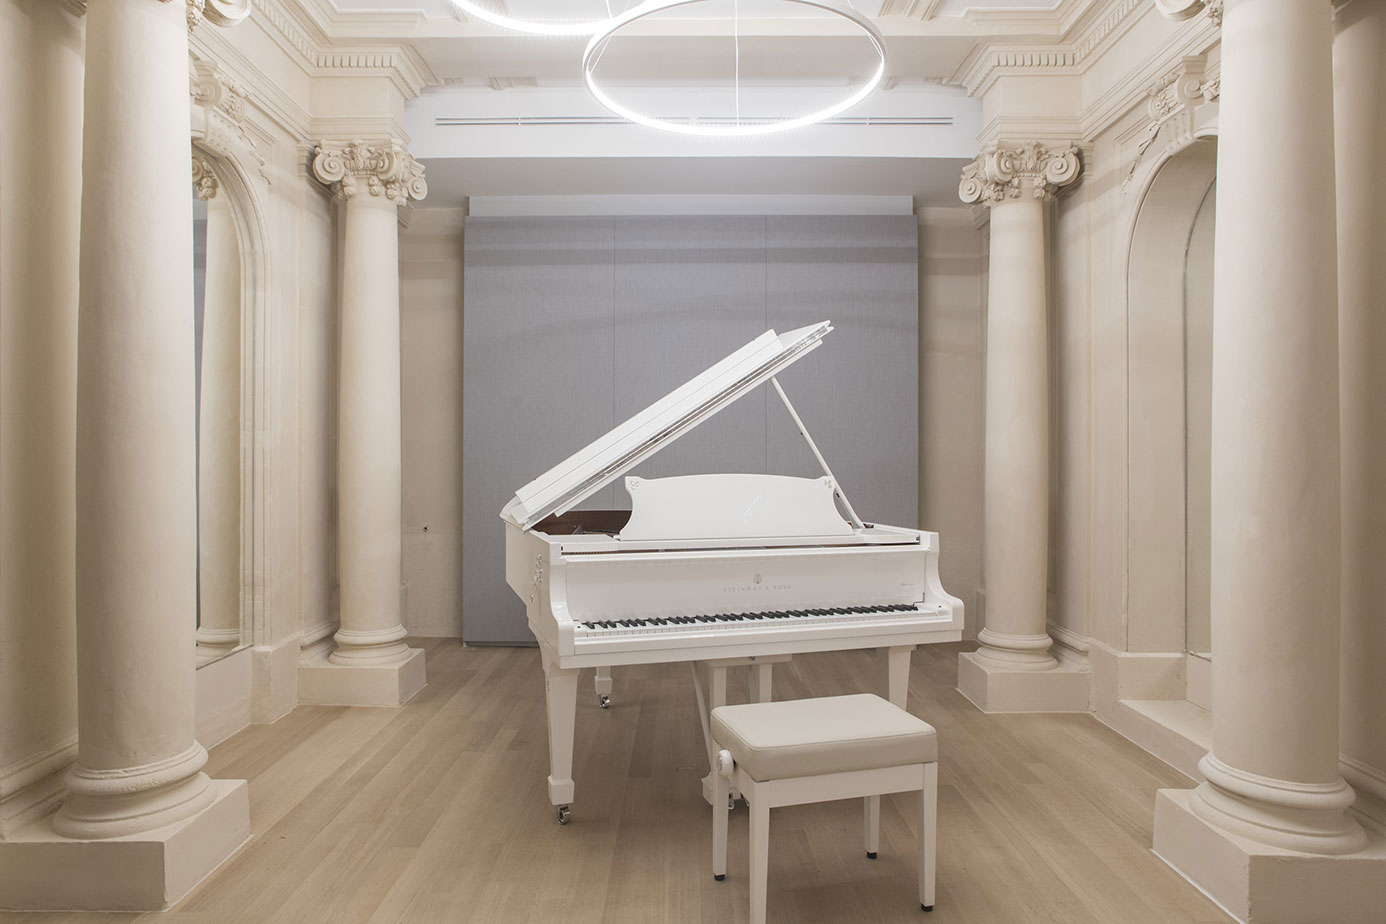 Steinway & Sons opens its showroom in Paris 2017 PLUMEVOYAGE @plumevoyagemagazine © Steinway & Sons